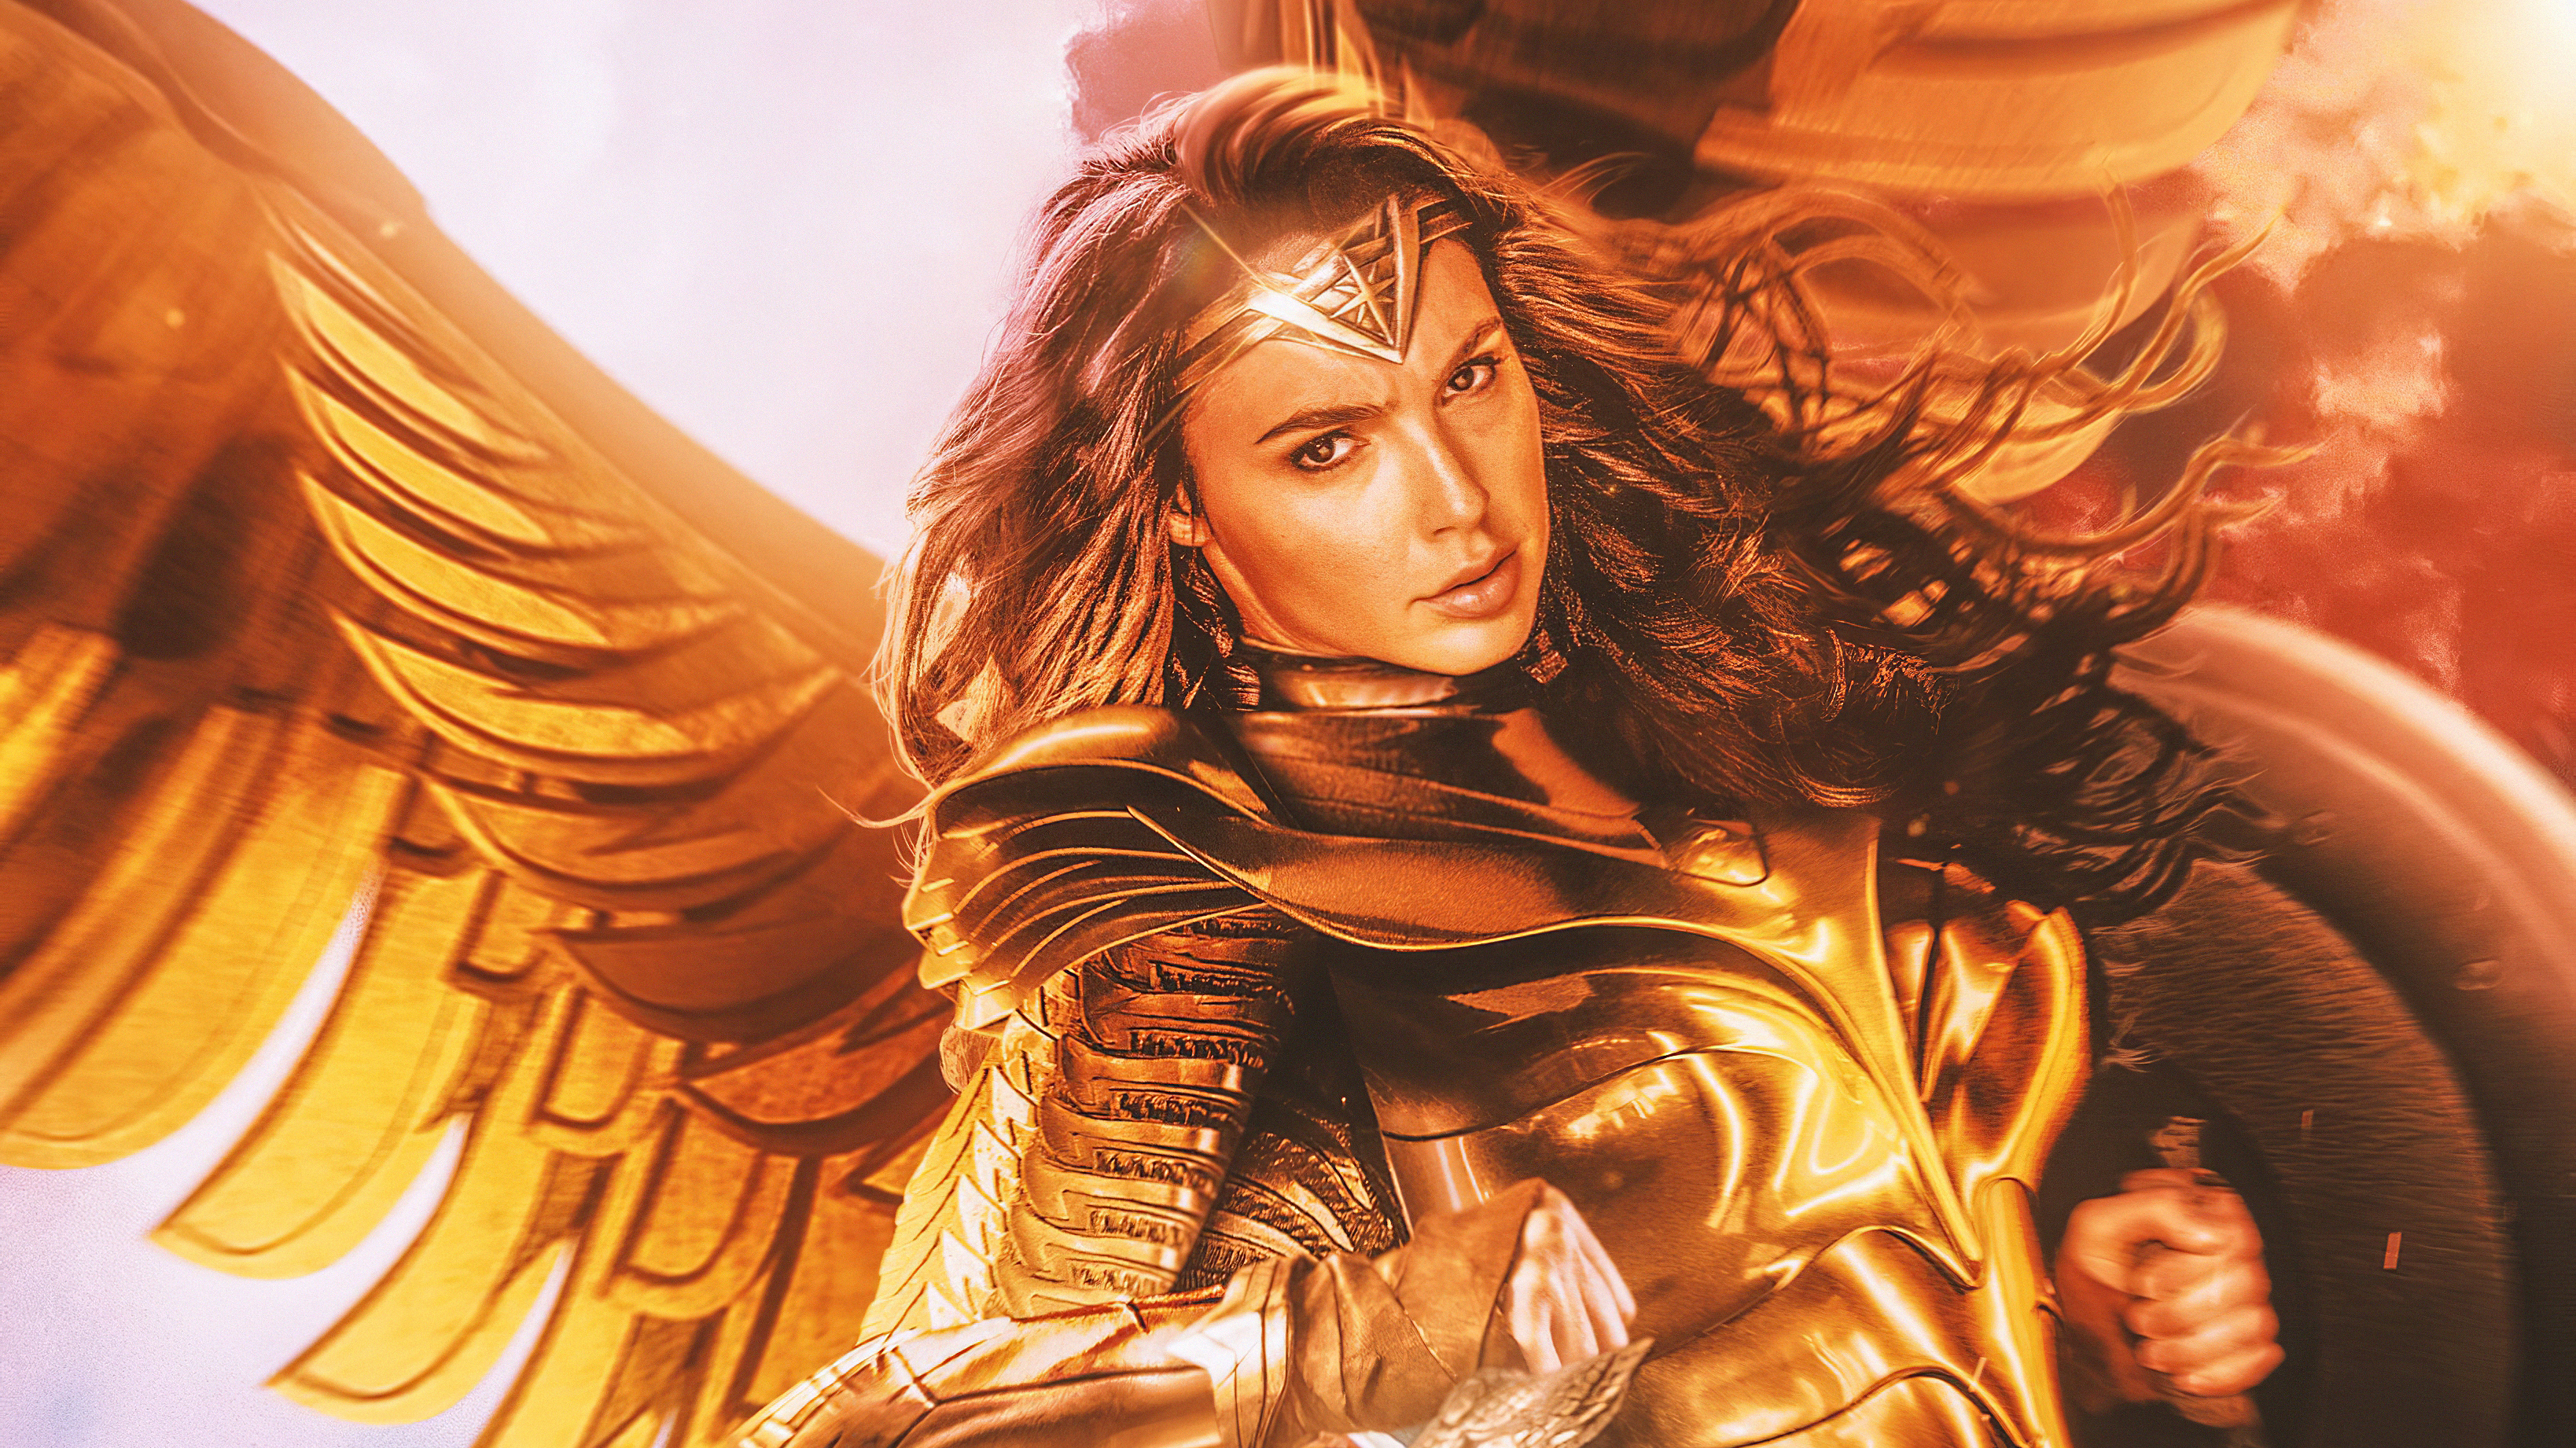 wonder woman wings hd superheroes 4k wallpapers images backgrounds photos and pictures wonder woman wings hd superheroes 4k